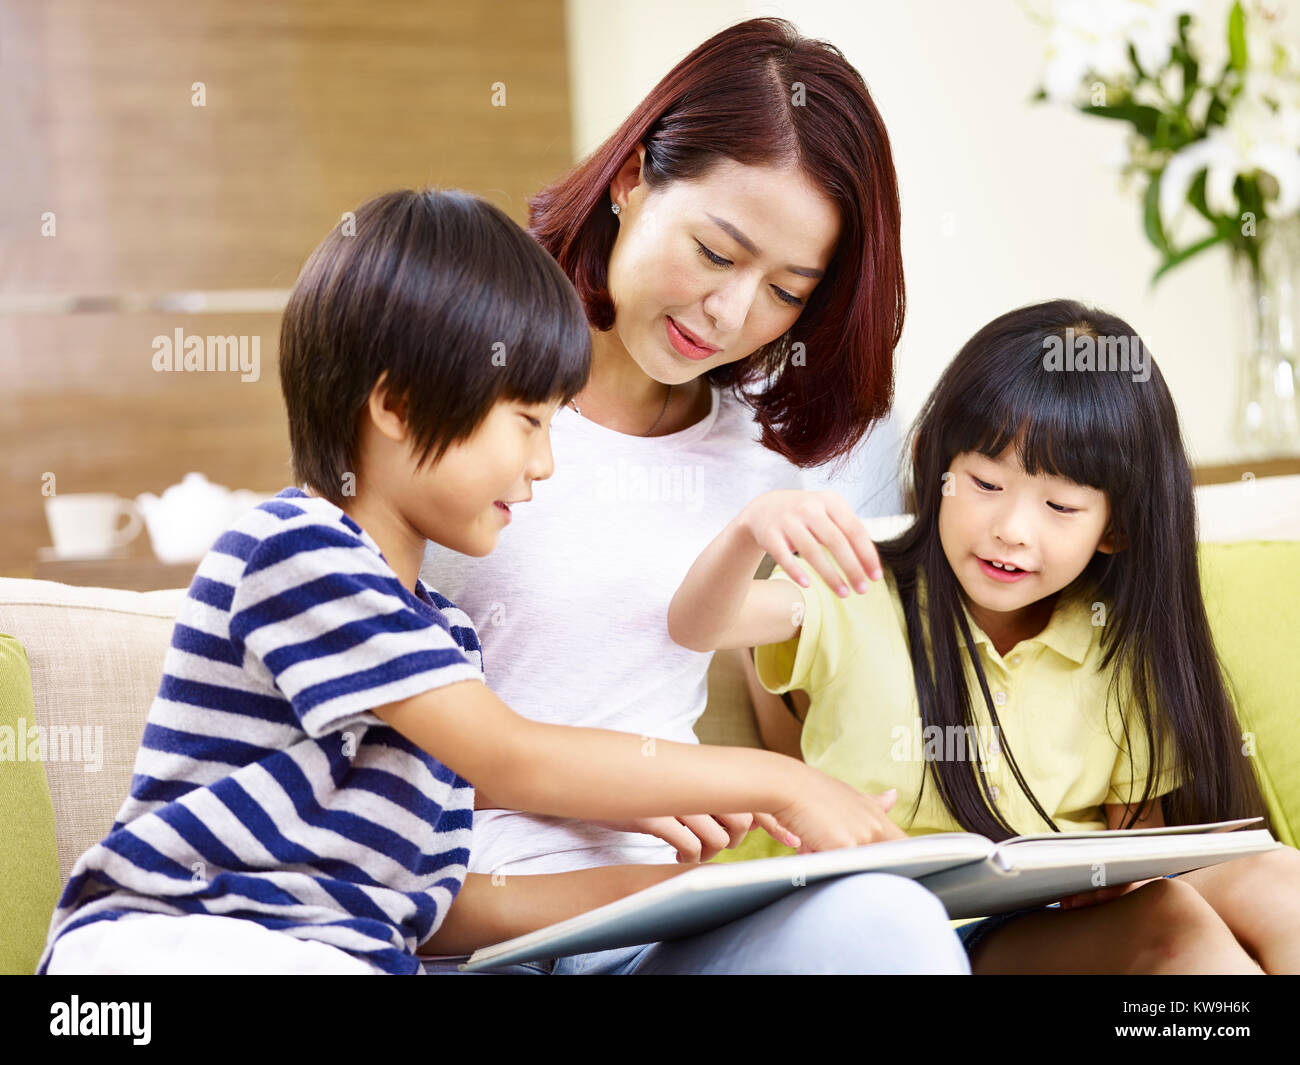 Young Asian mother and her son and daughter sitting on couch lire un livre ensemble. Banque D'Images